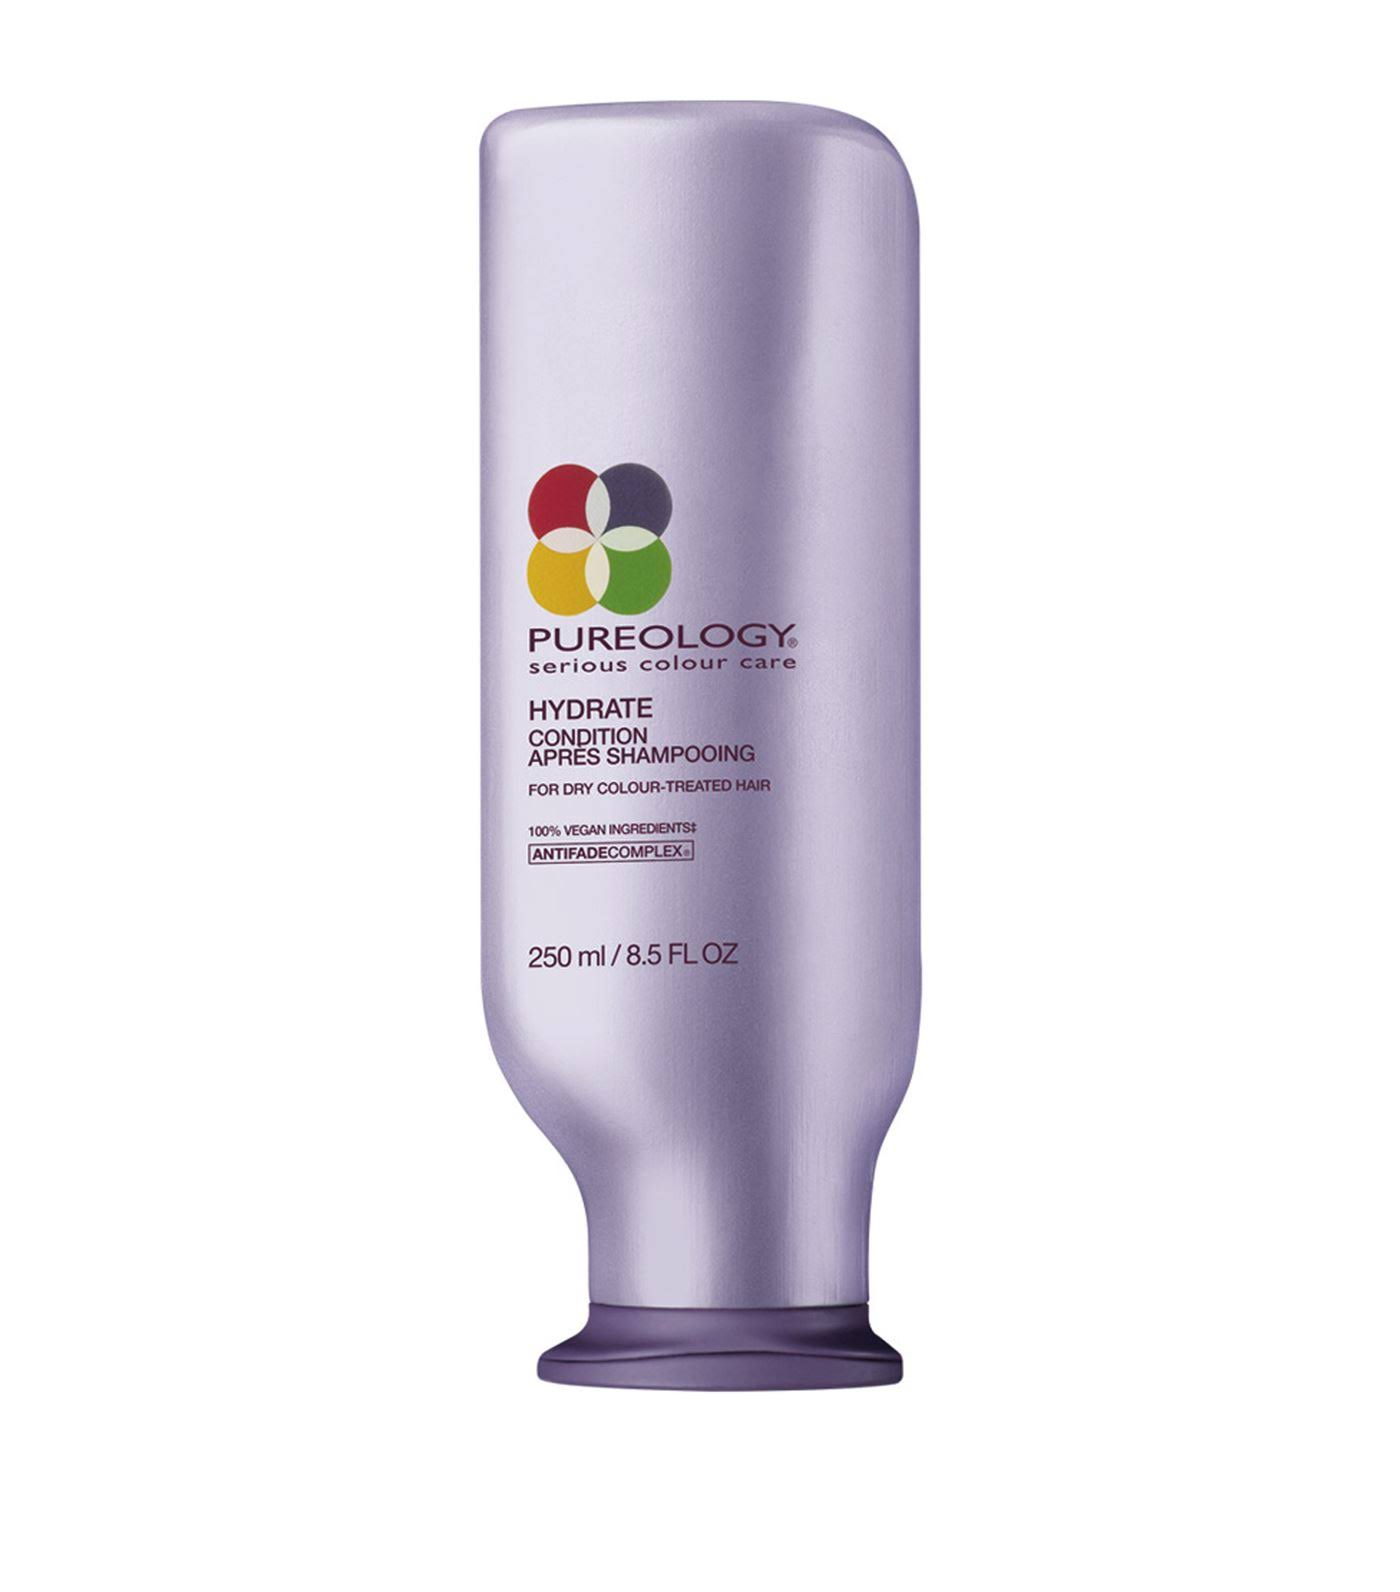 Pureology Condition, Hydrate - 8.5 fl oz